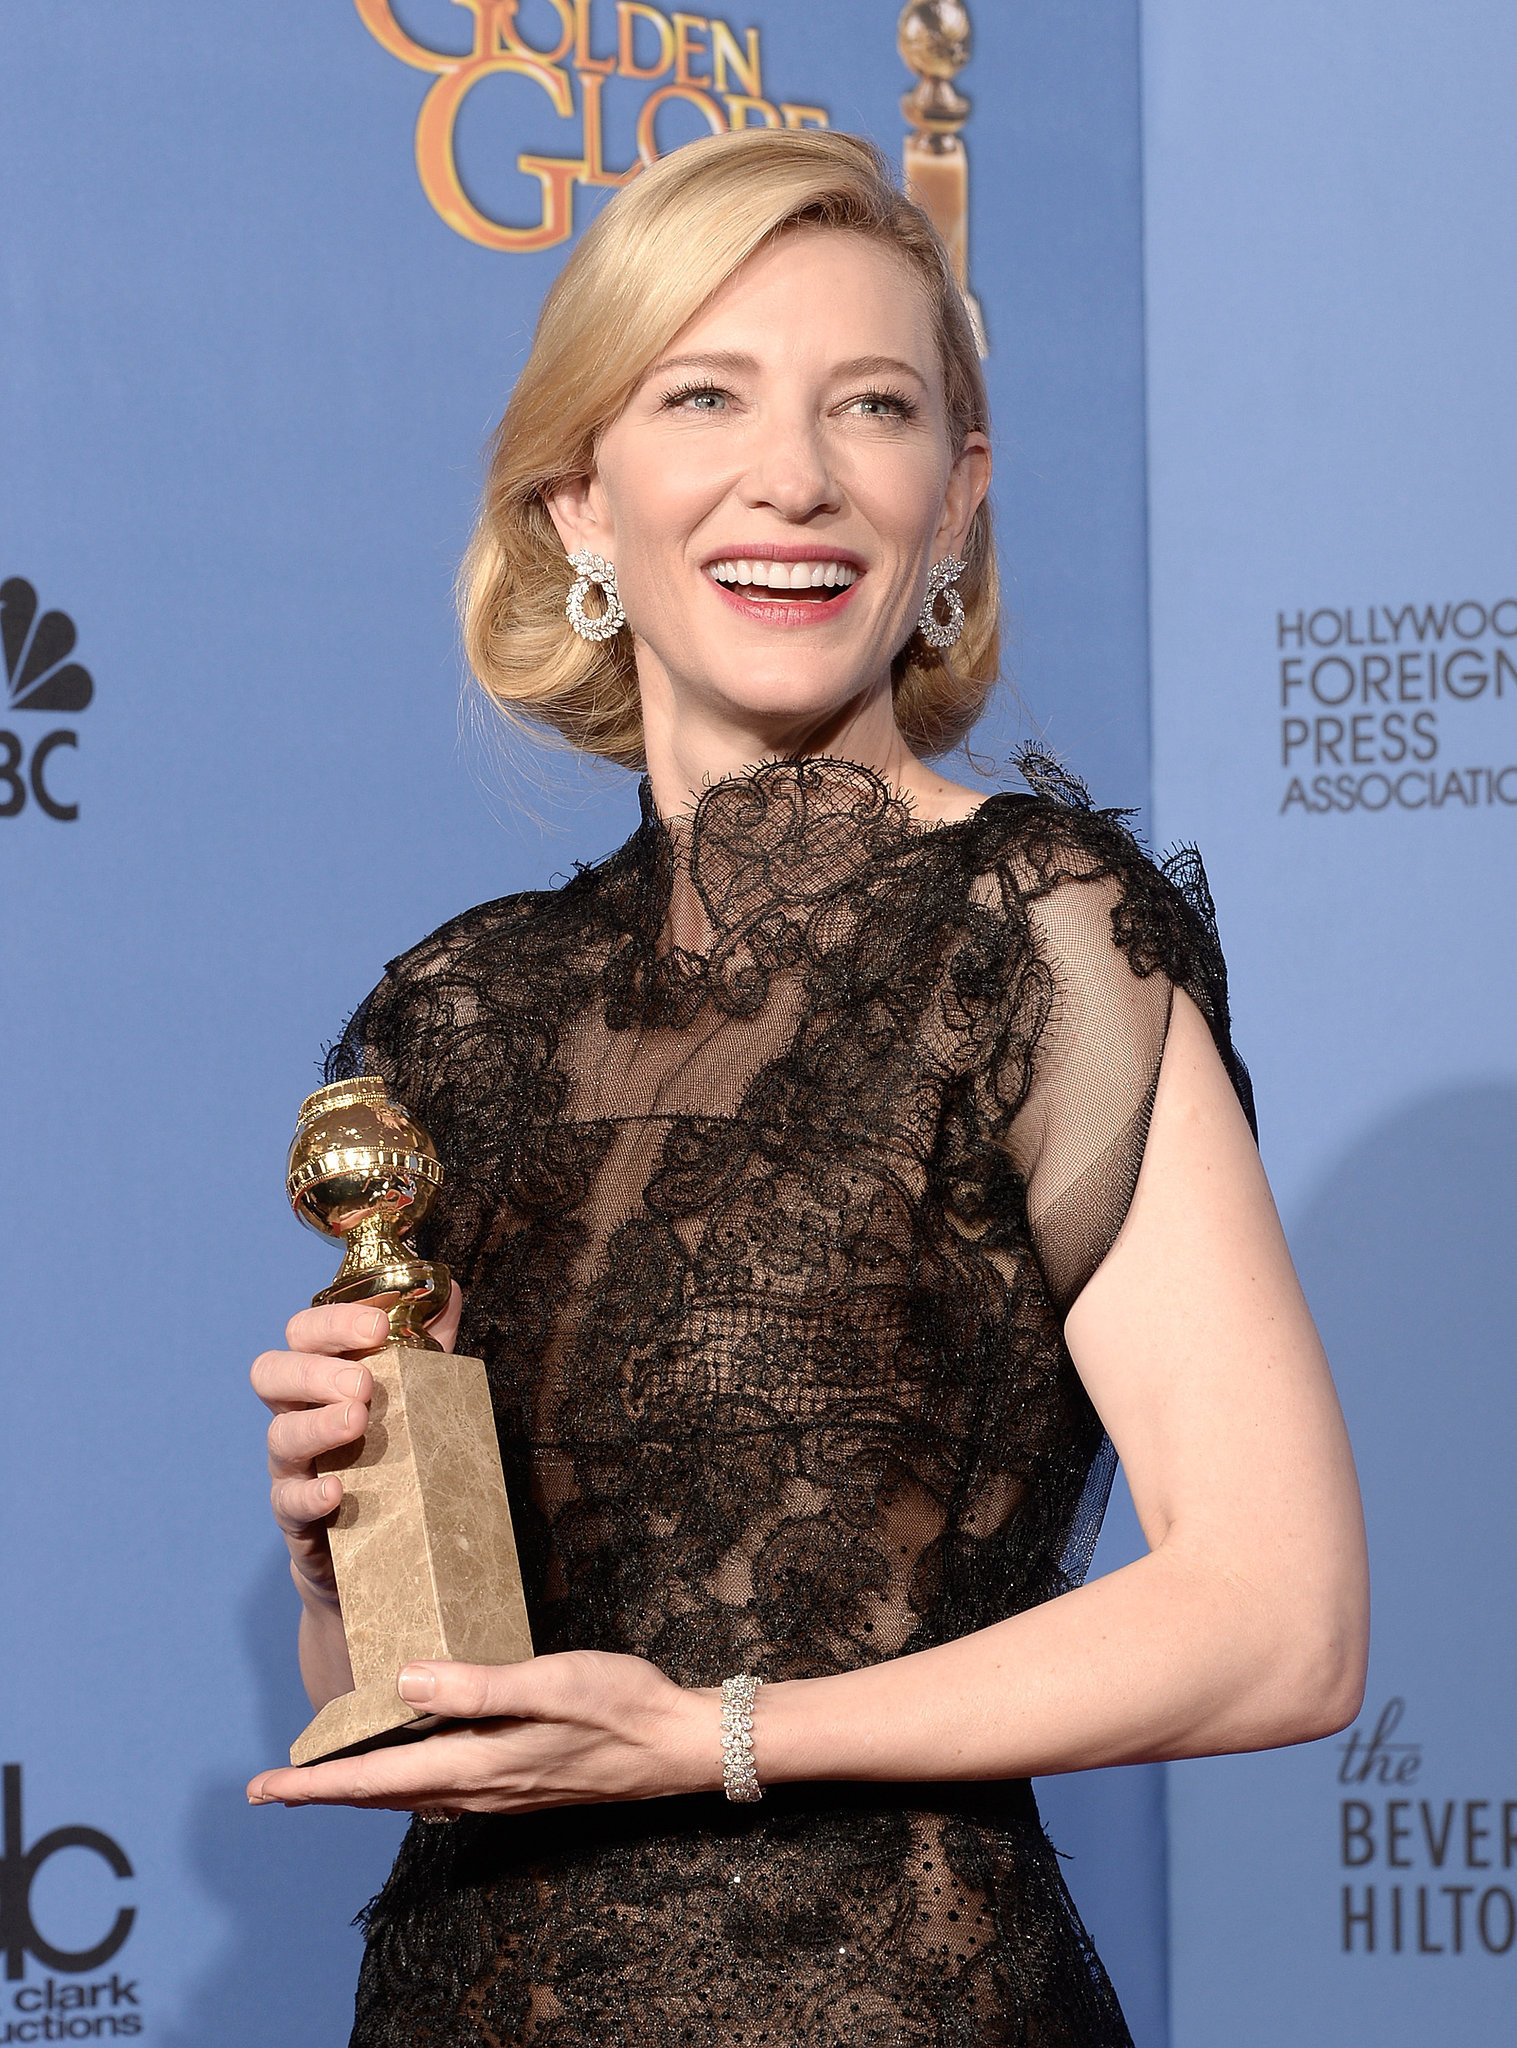 Cate Blanchett looked as elegant as ever.